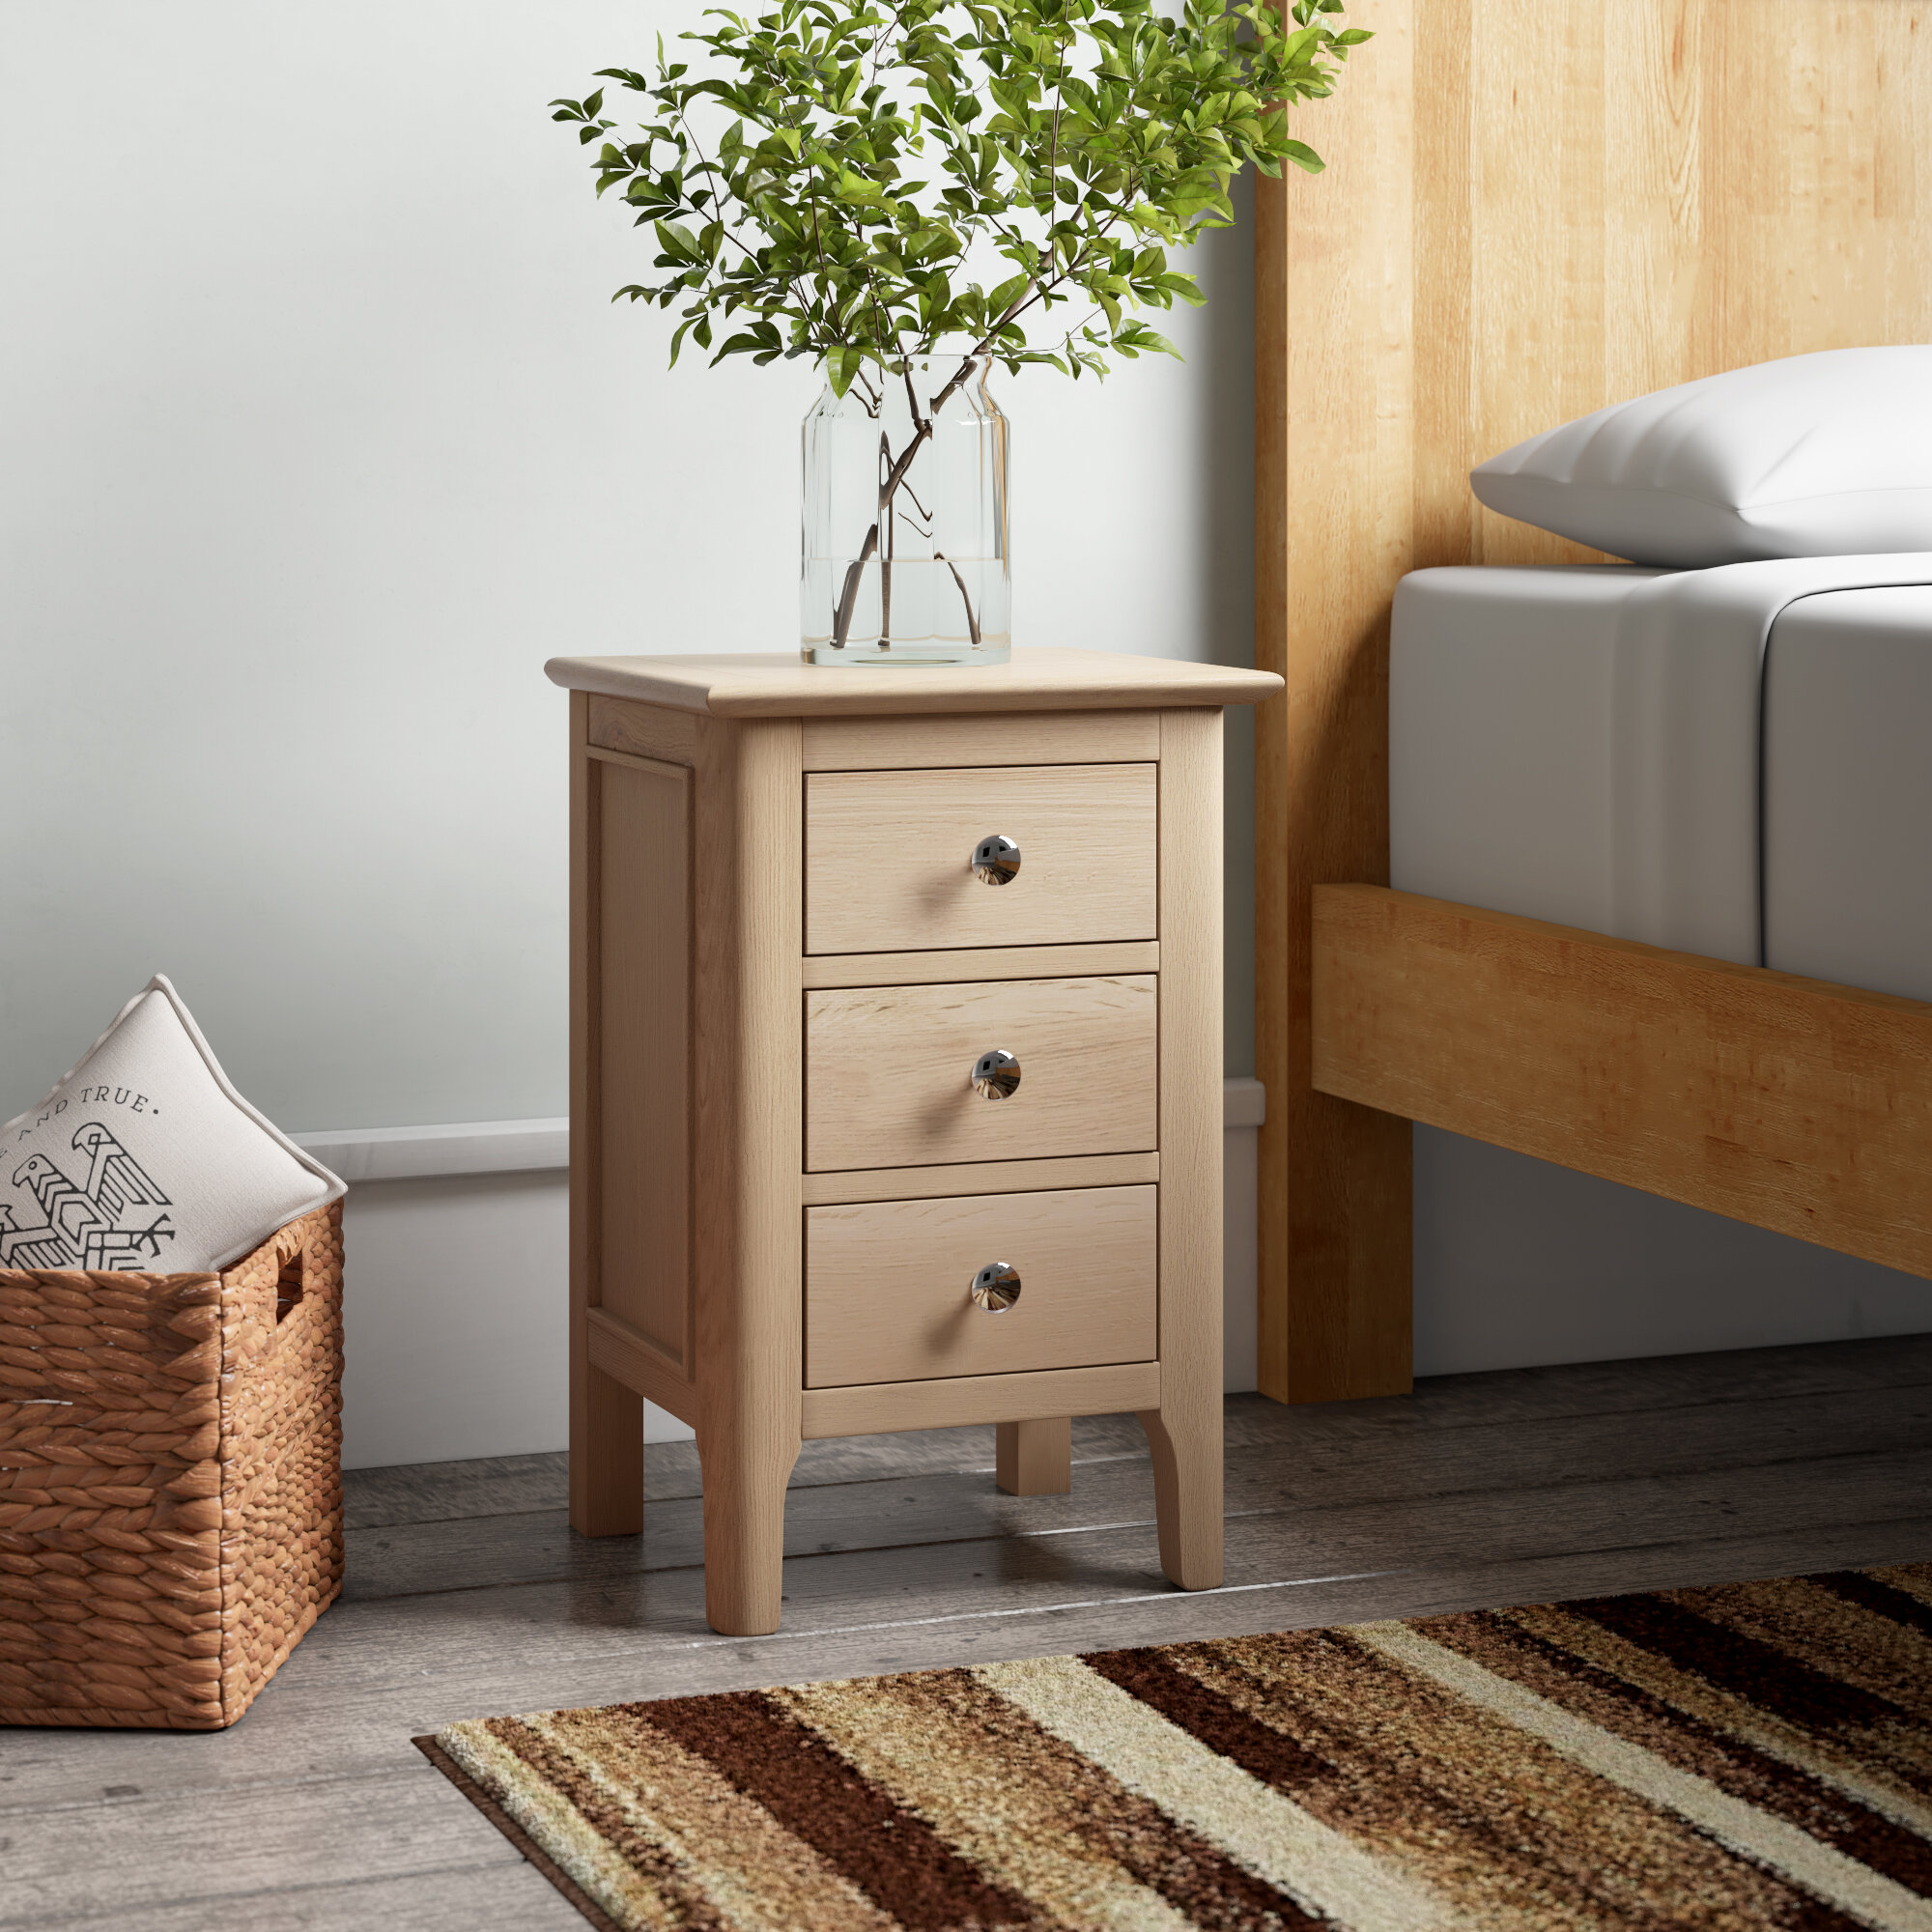 Bedside Chest of Drawers Oak 3 Drawer Bedside Table Solid Wood Linear